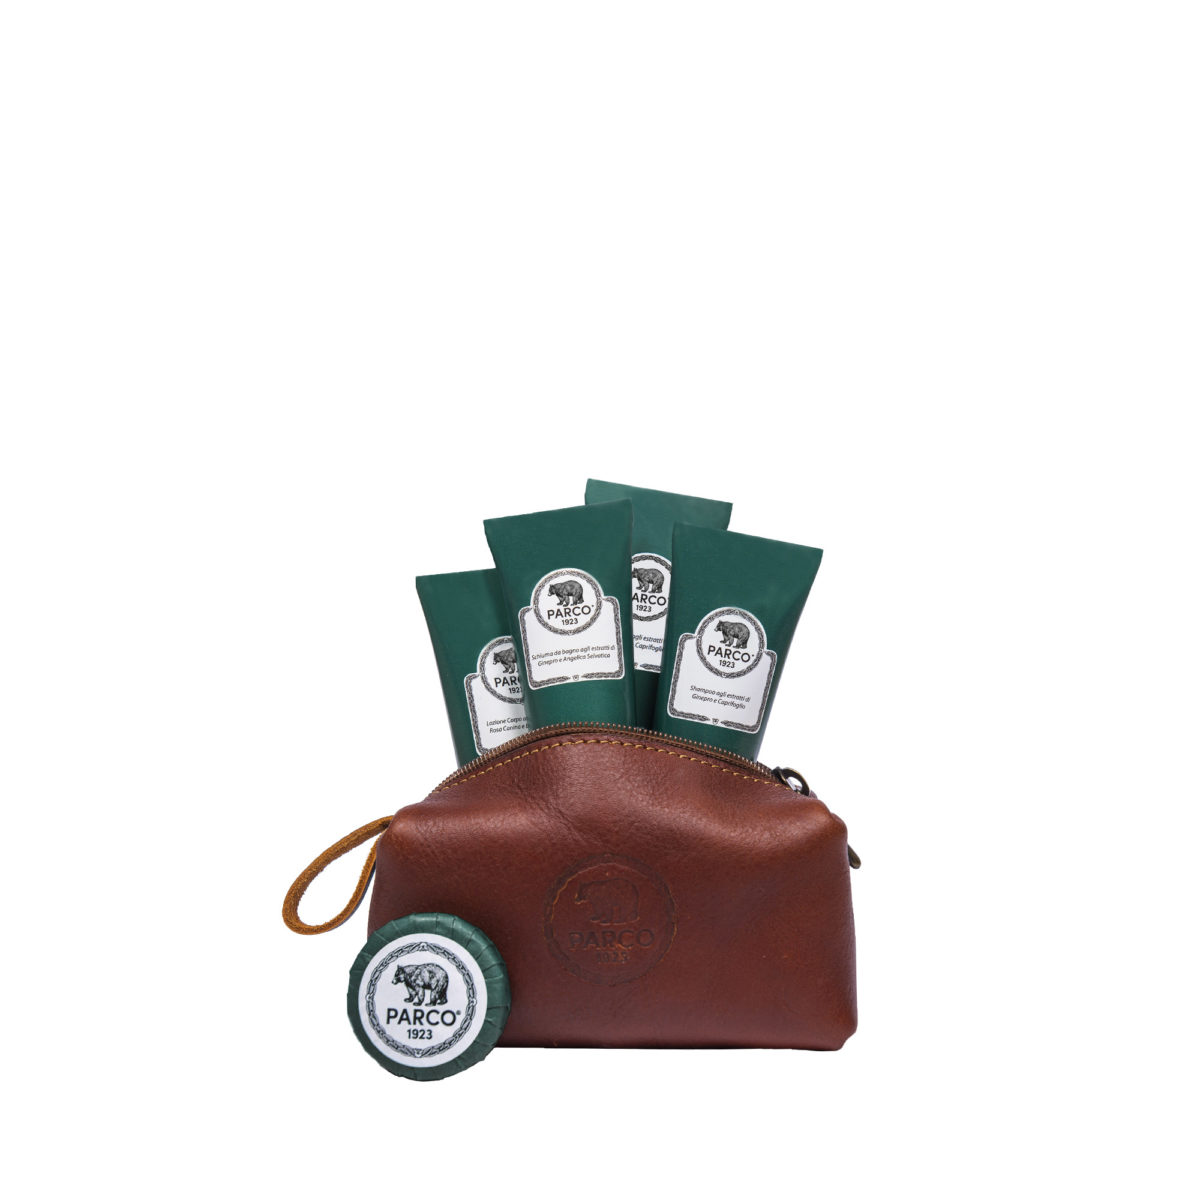 Nuovo Travel Kit Parco 1923 - 03